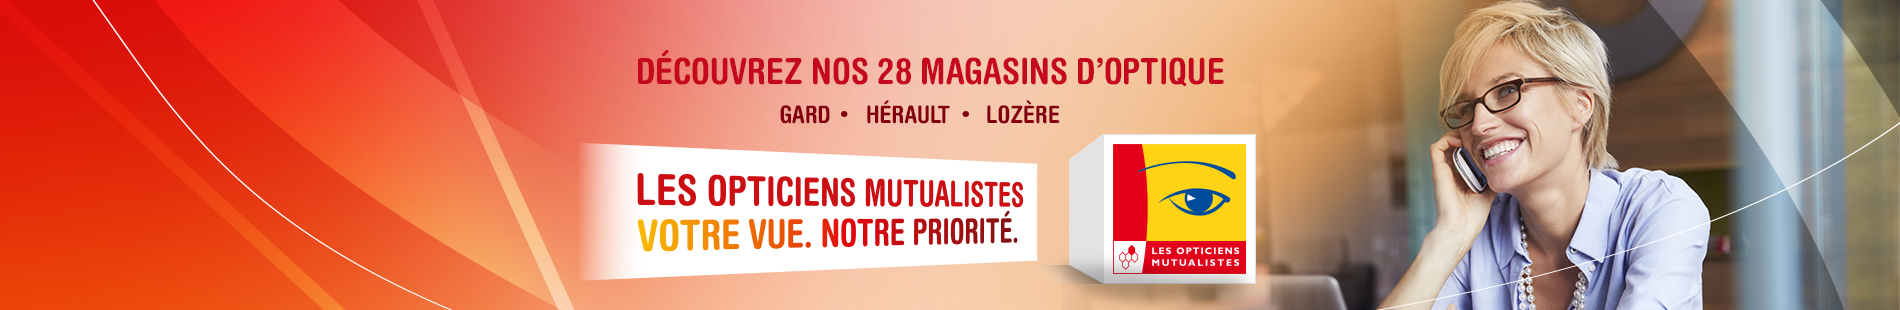 MFGS - Opticiens mutualistes